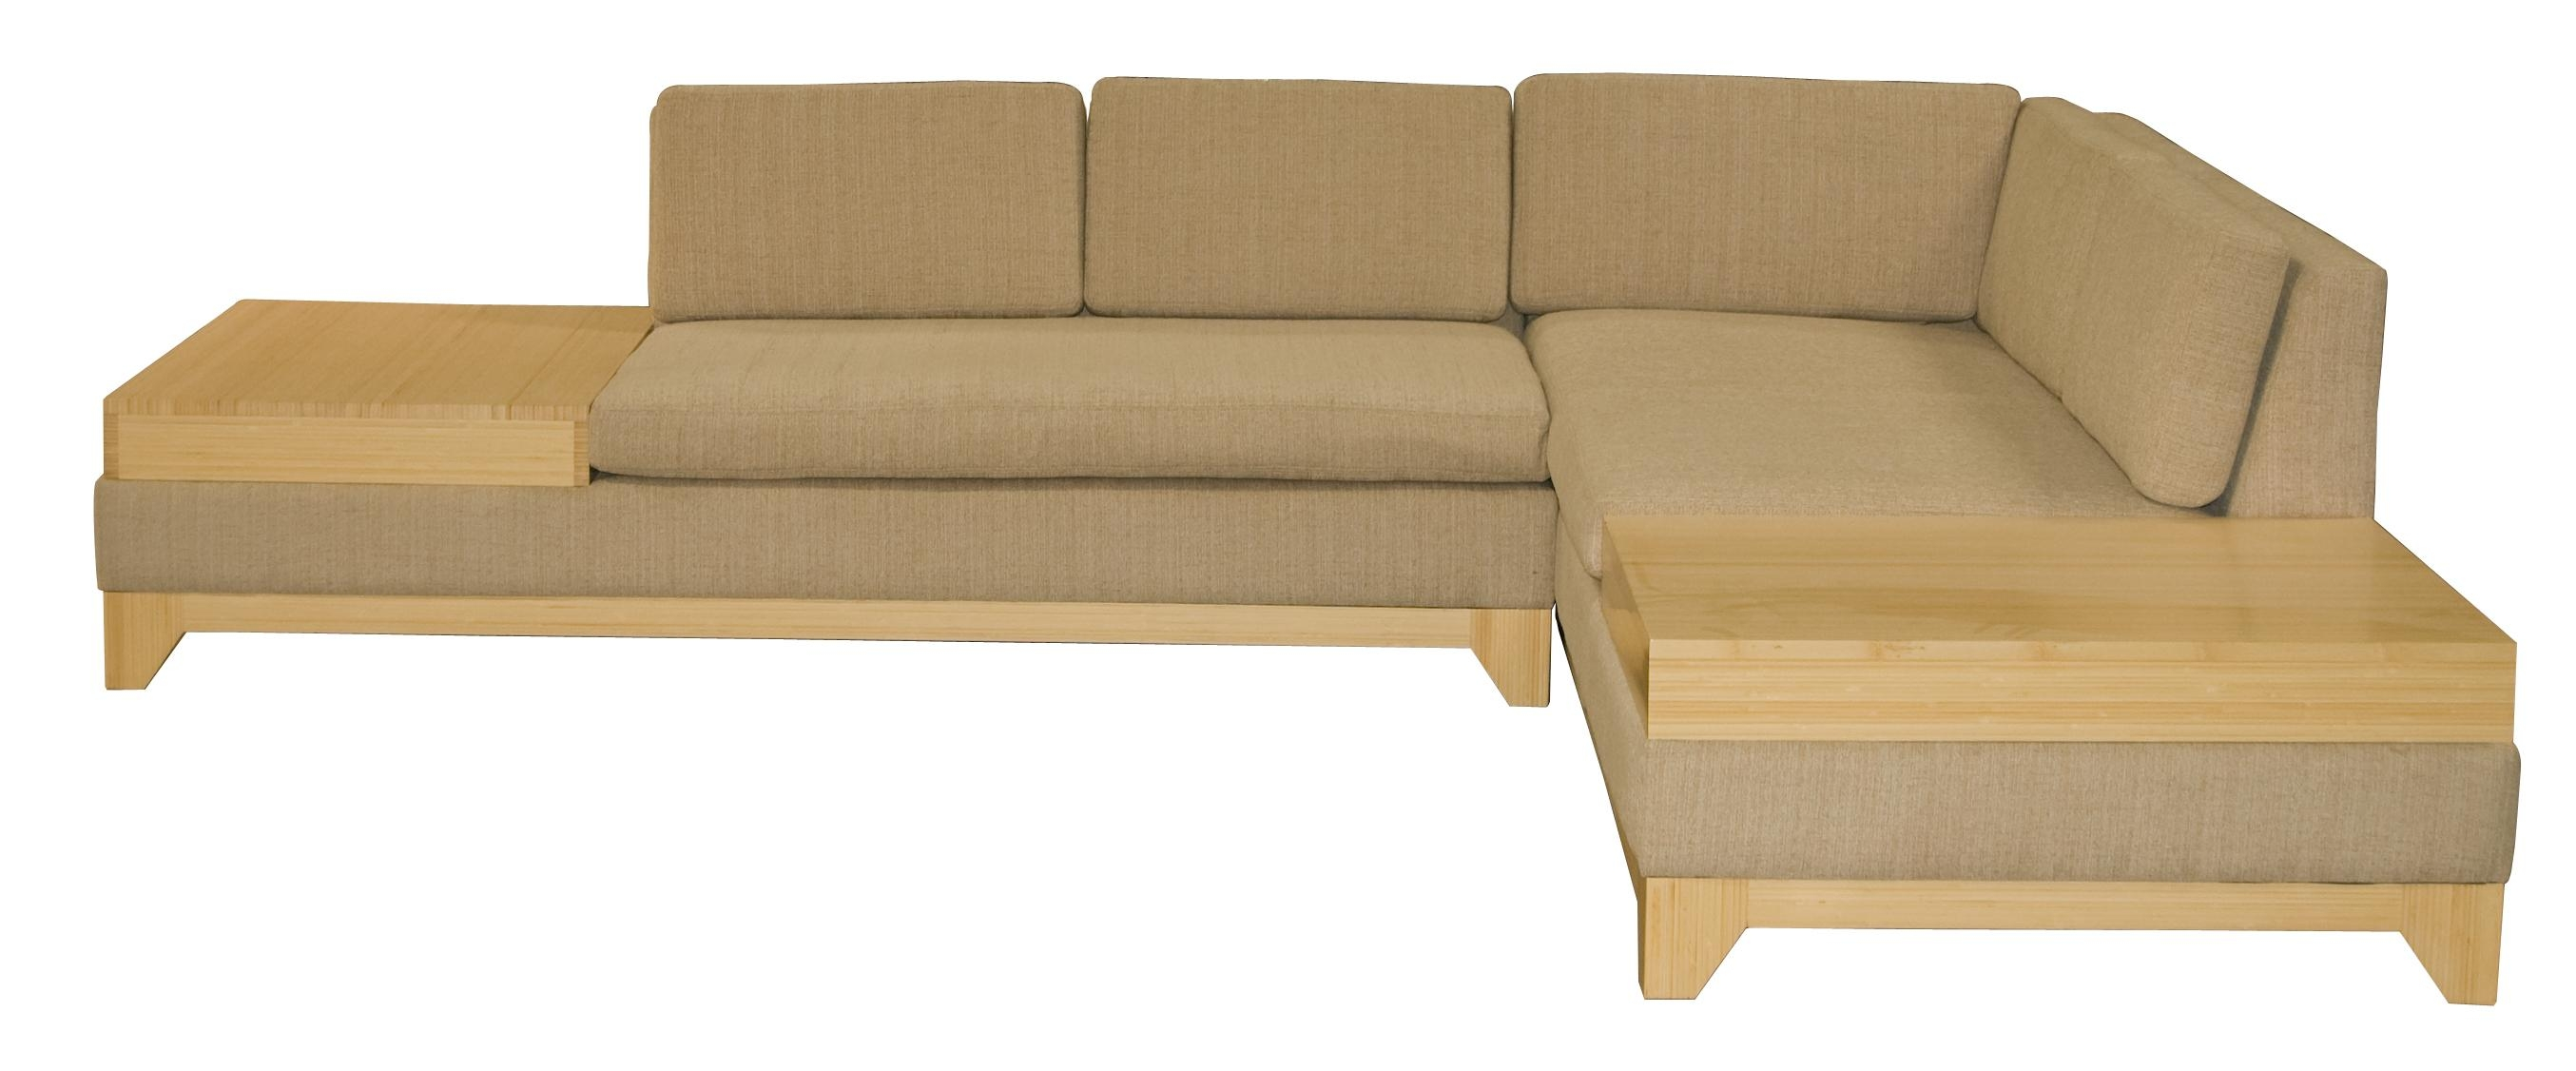 The Sofa Company Offers Customers Green Furnishings For The Home Intended For Bamboo Sofas (View 6 of 20)